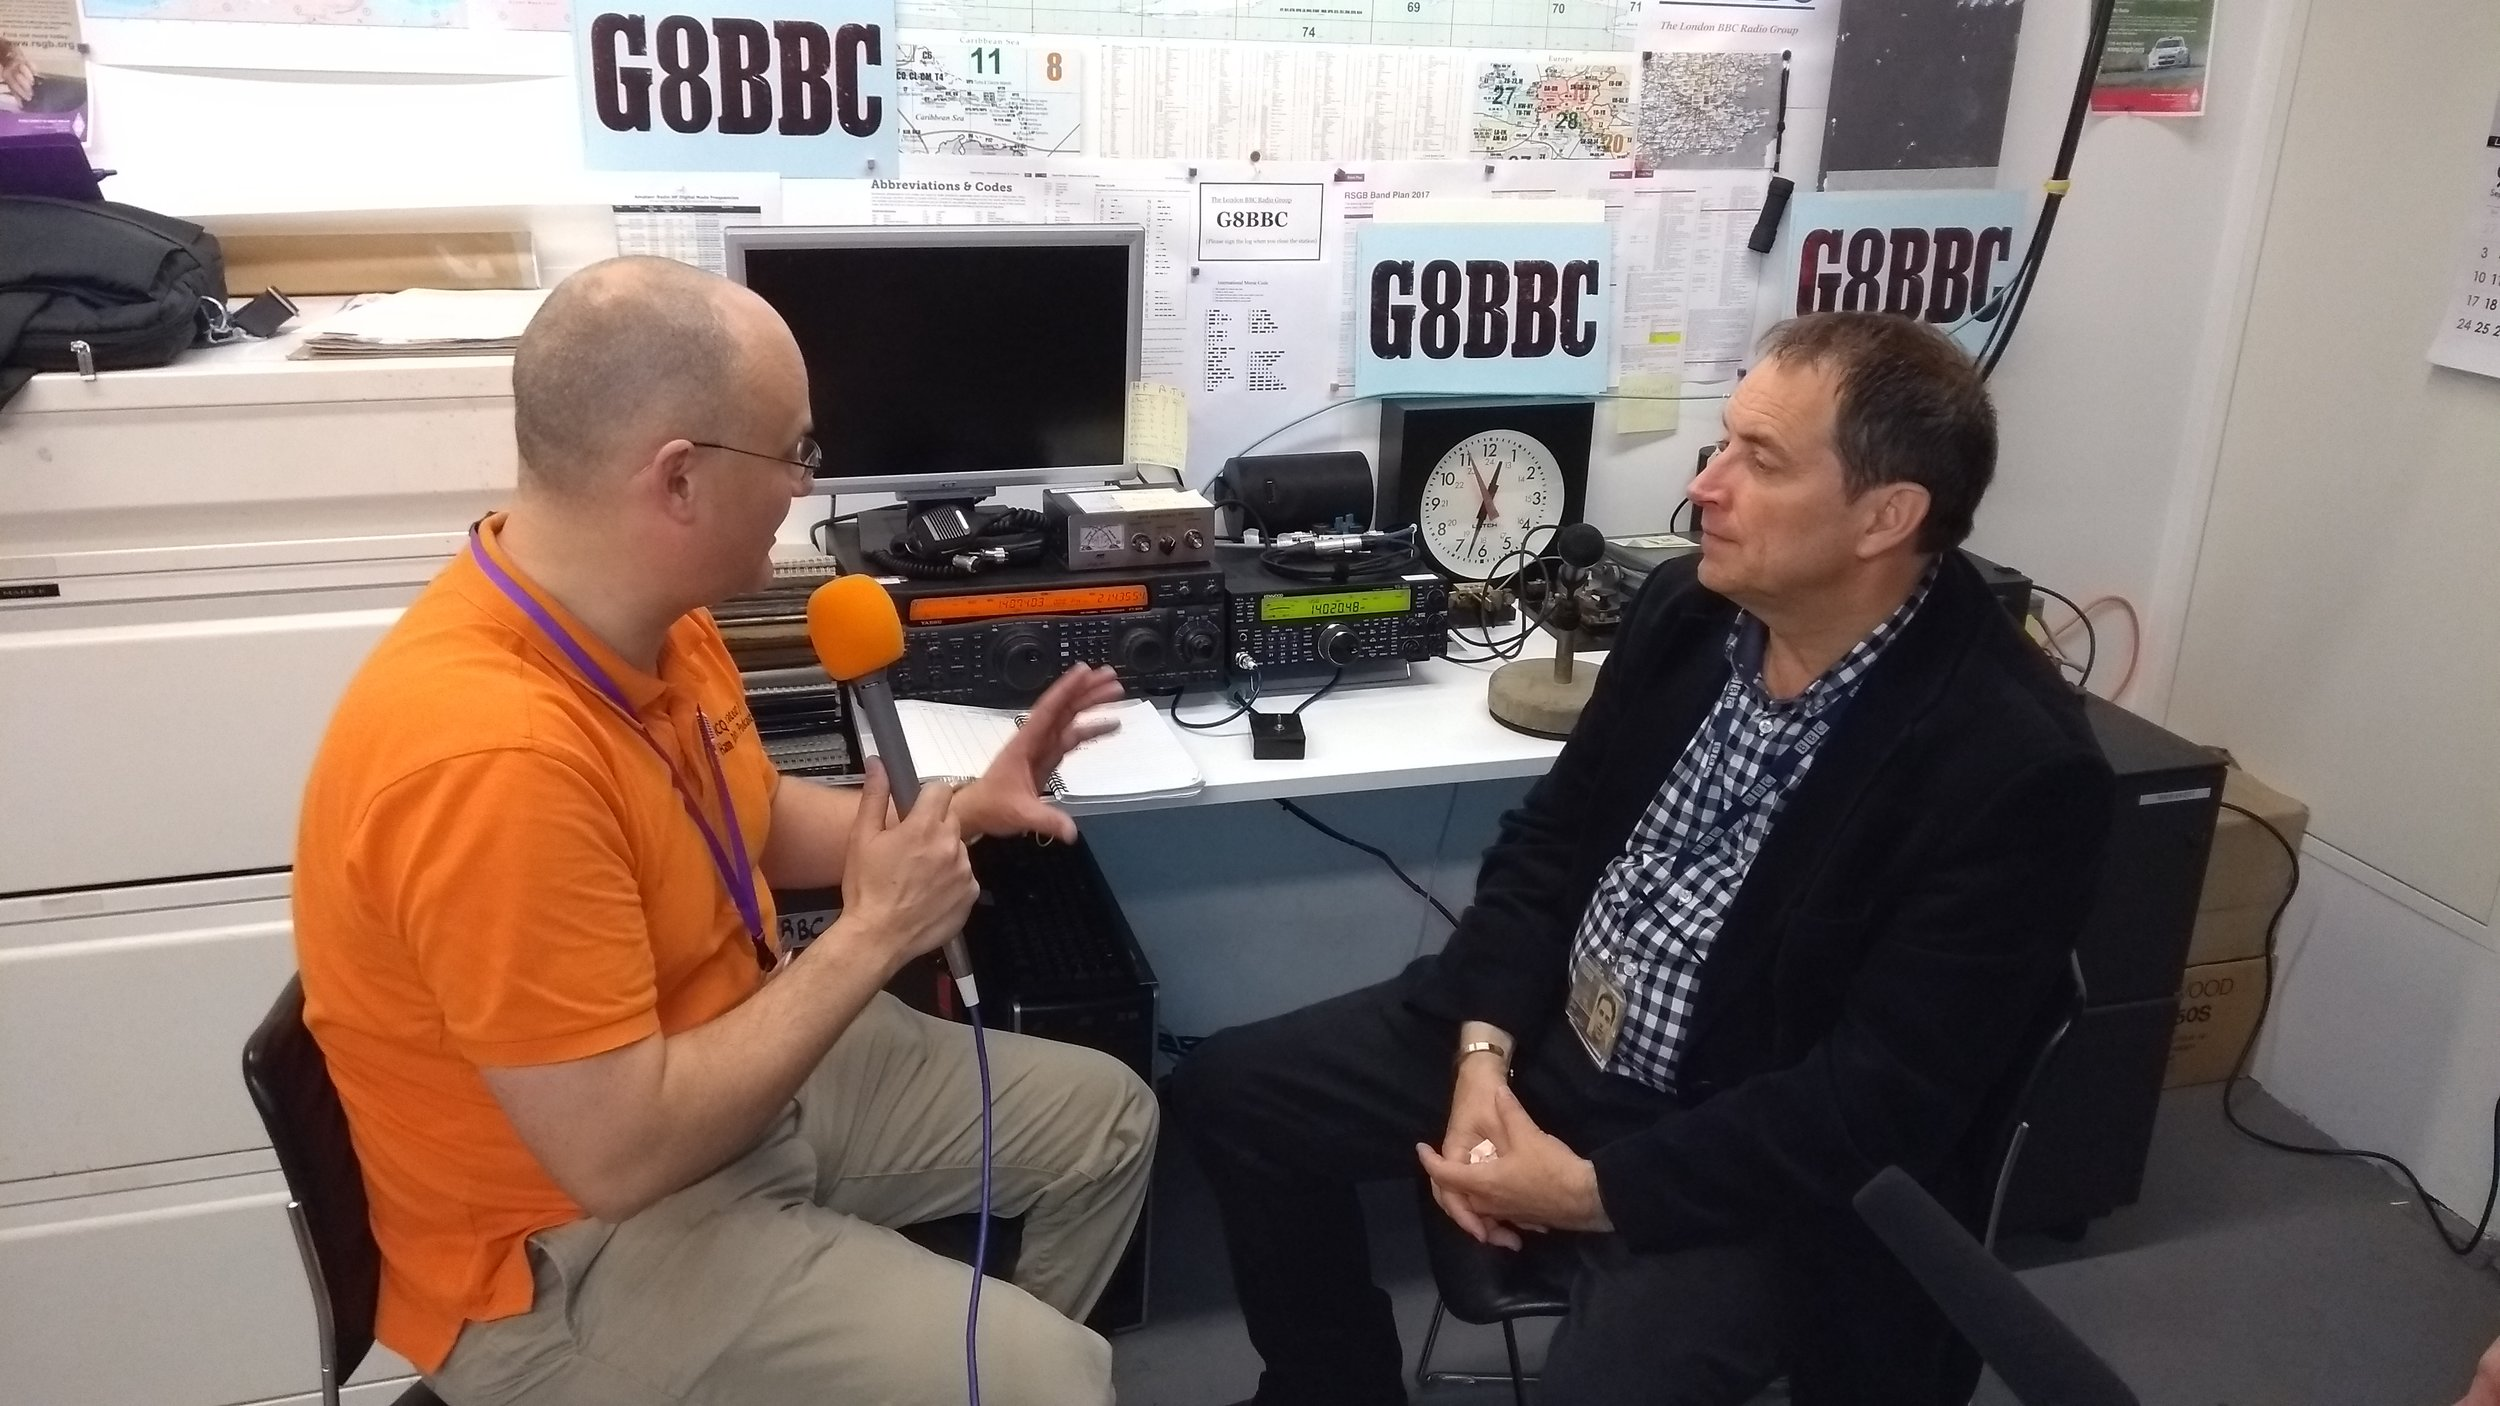 Jim Lee (G4AEH) Chairman of BBC Radio Group being interviewed by Chris M0TCH